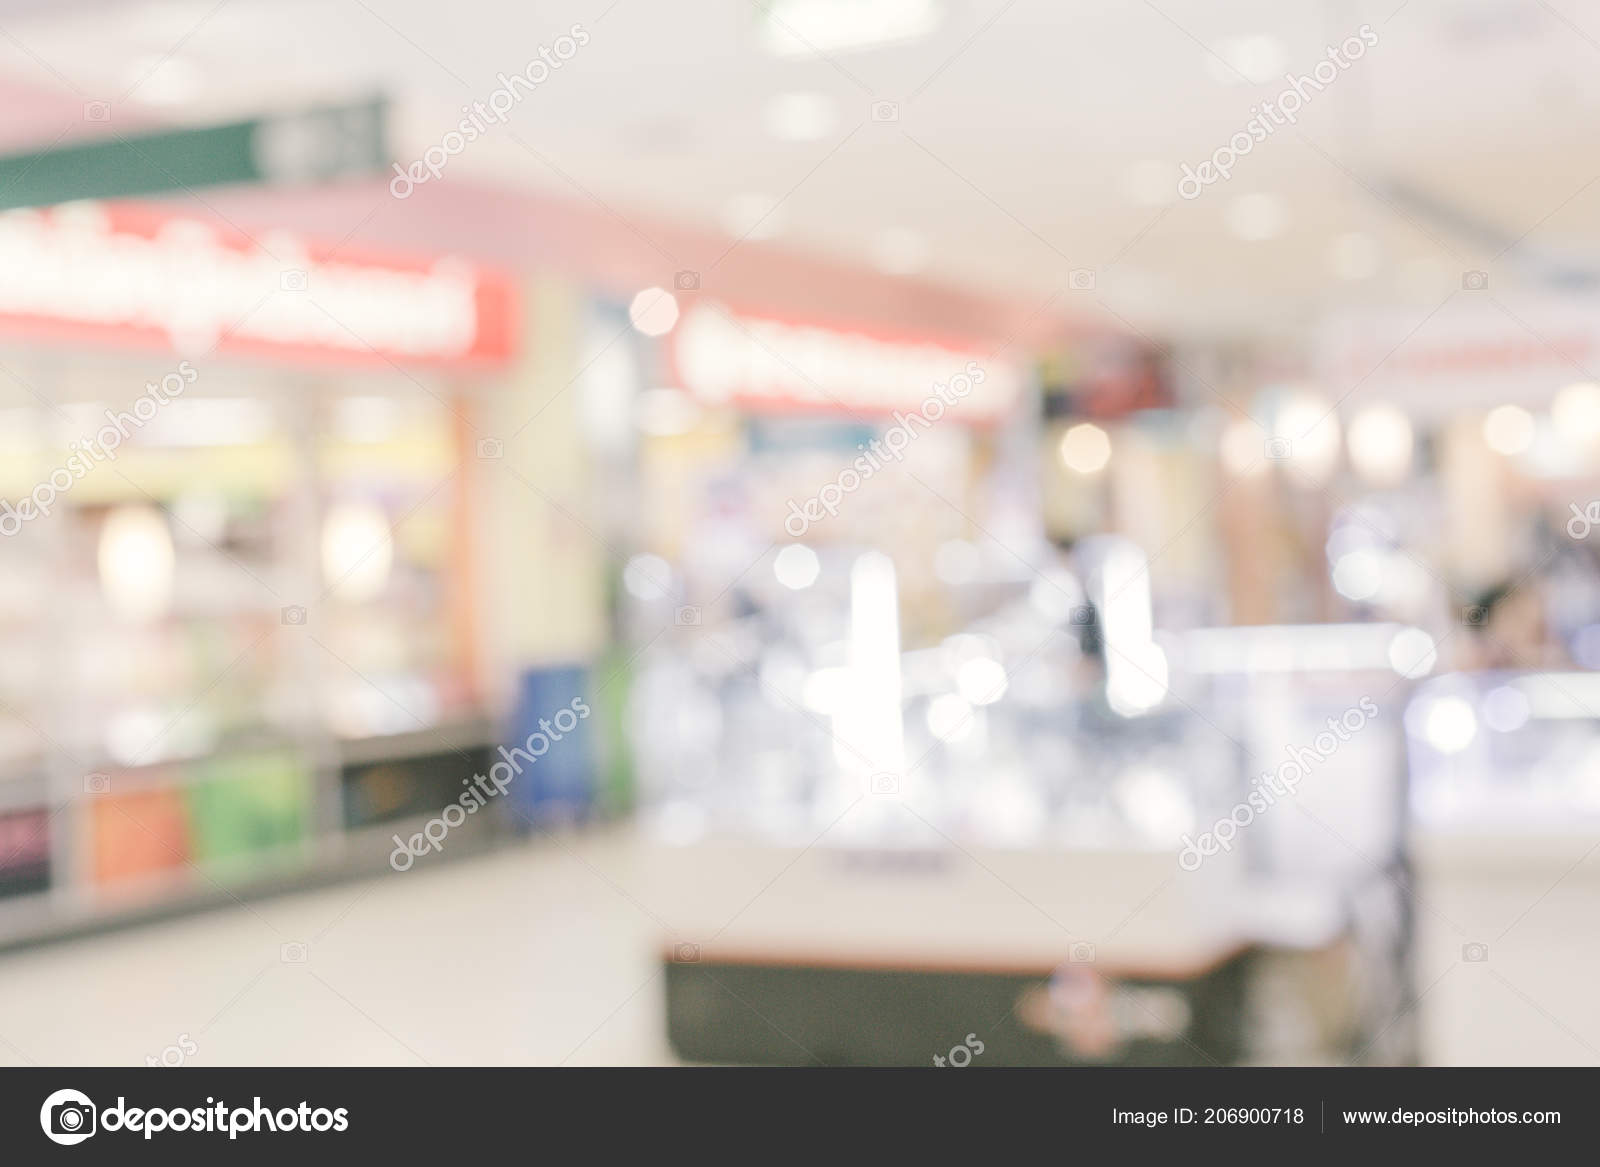 Store En Stock Abstract Blur Department Store With Shopping Mall Interior For